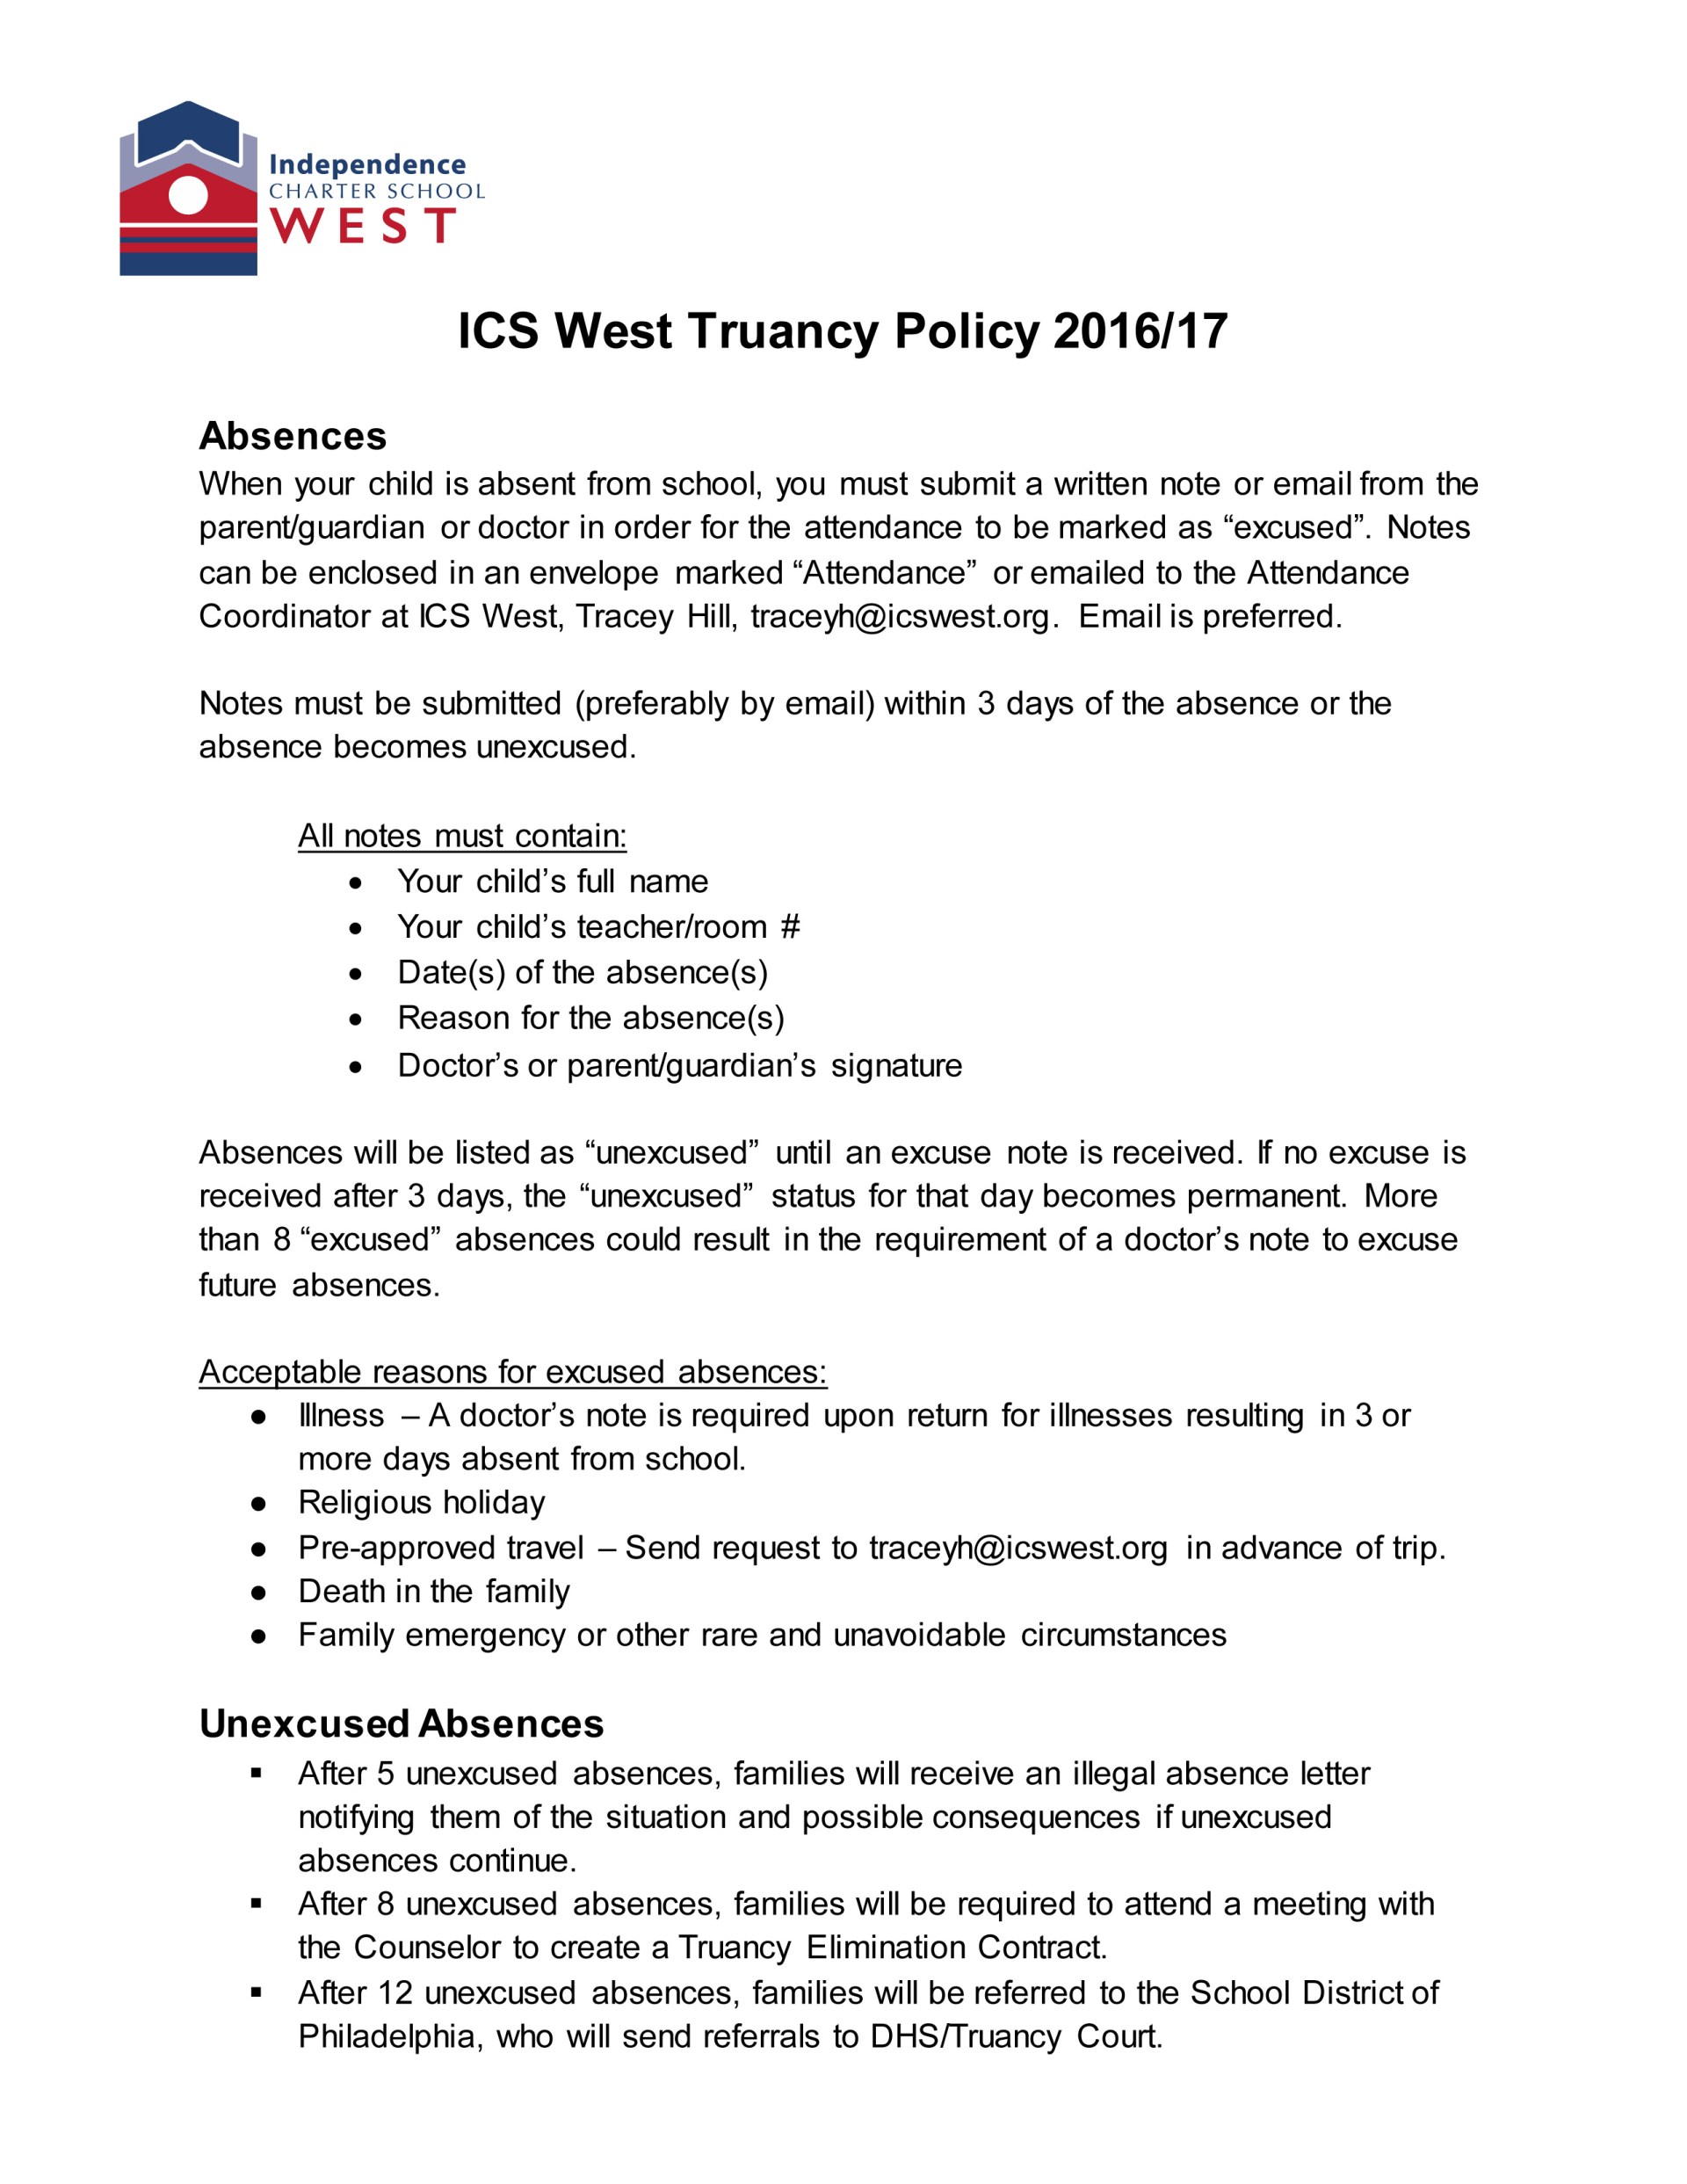 ICSW Truancy Policy 2016-17 FINAL-1